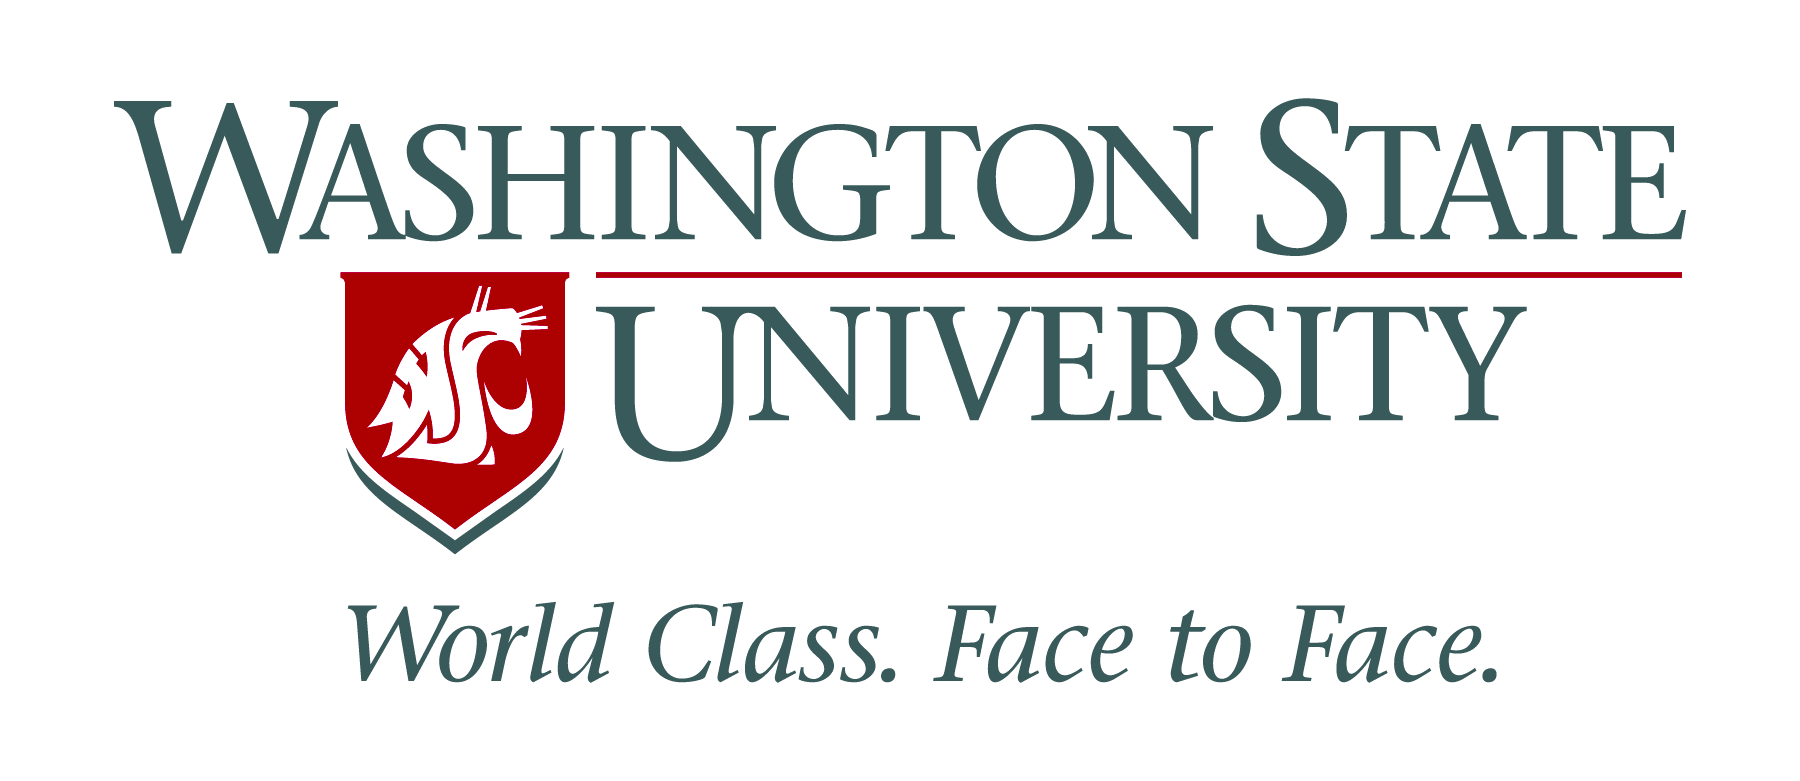 WSU_SIGNATURE_4_COLOR_12_INCH-1 Top 15 MBA Programs & Business Schools